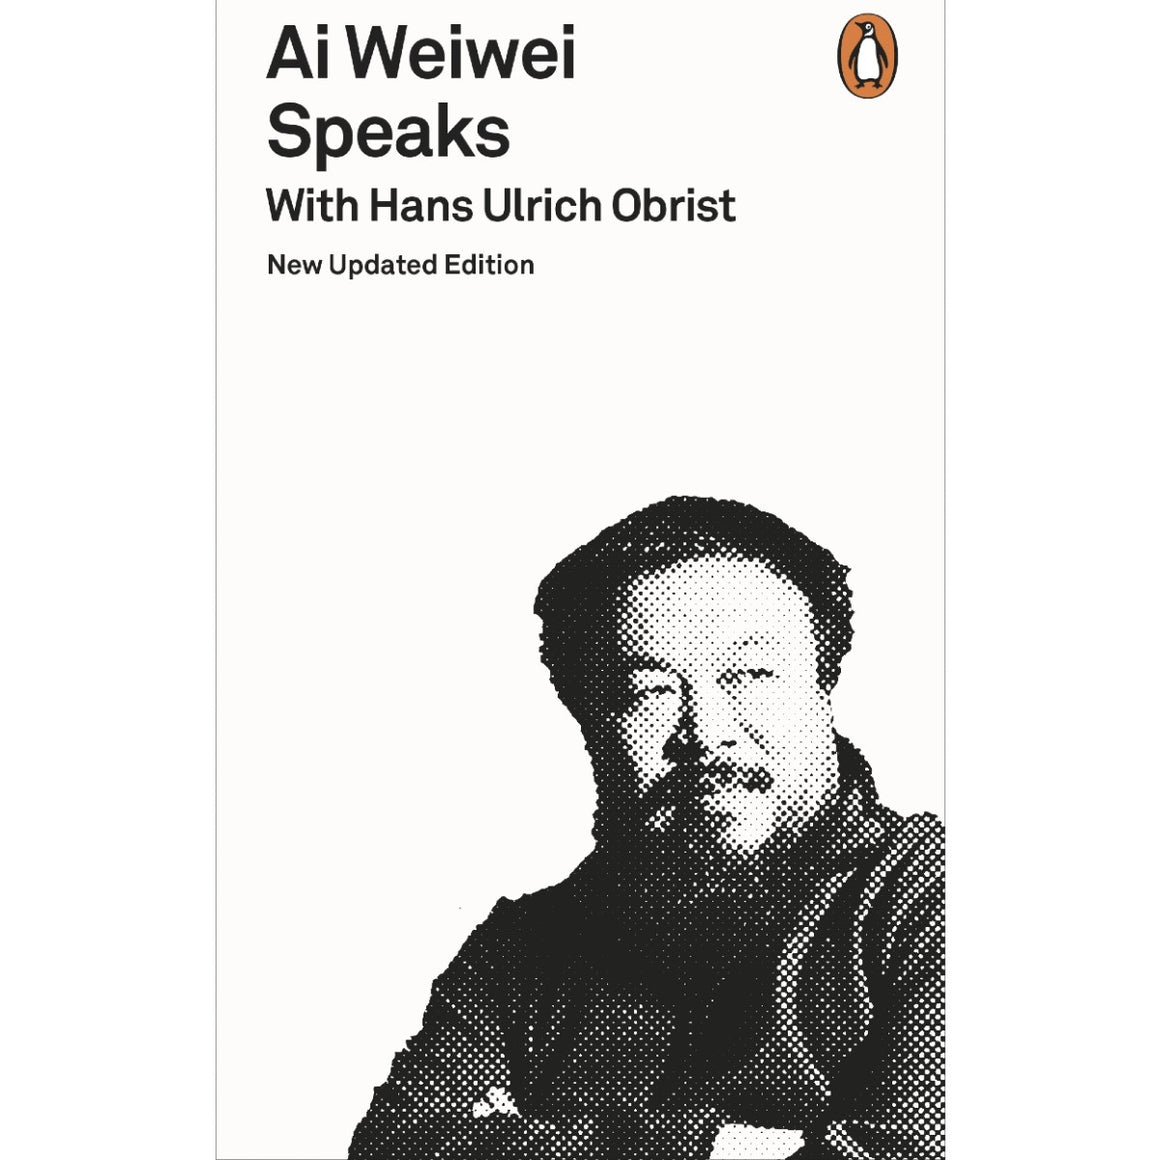 A book cover with a cover black and white photo of artist Ai Weiwei